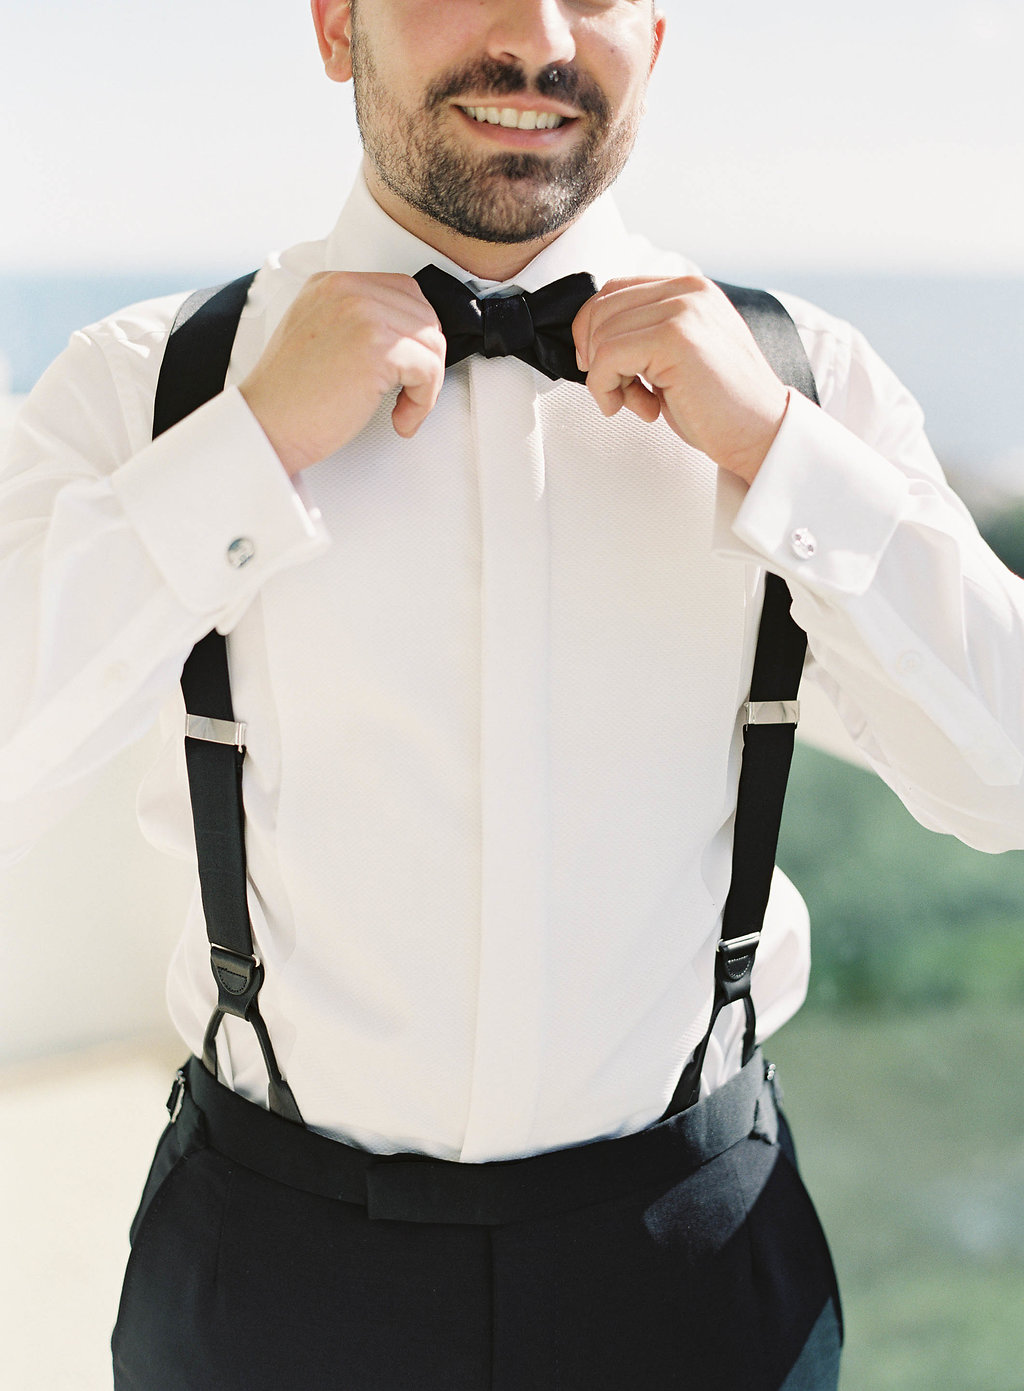 Groom tightening bow tie with suspenders on